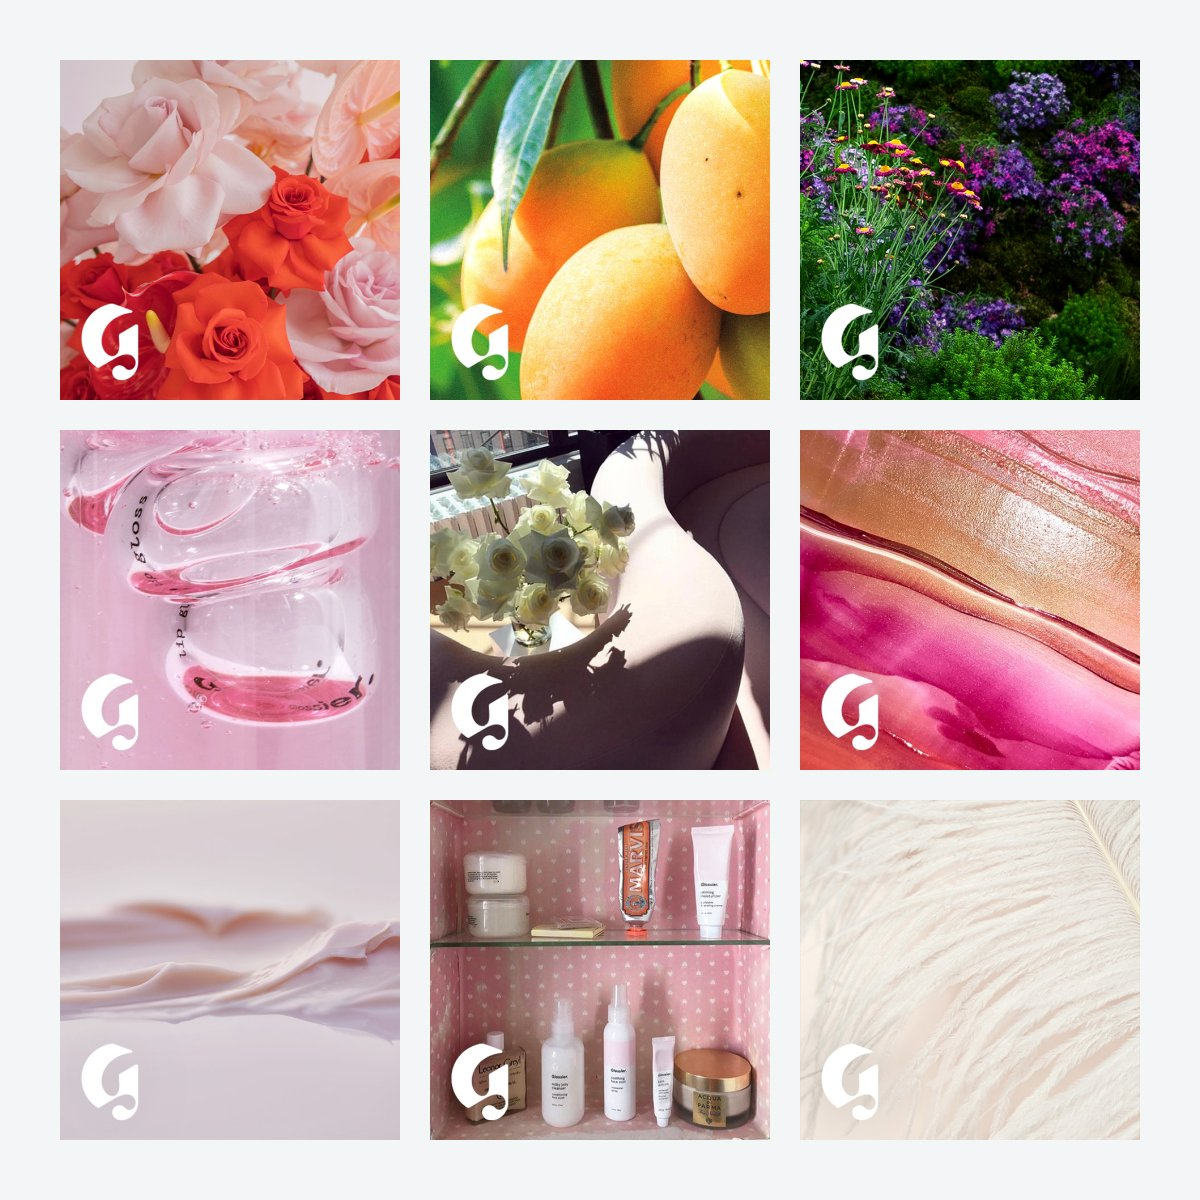 Glossier Glossier Playlists Vol 2 Milled Glossier is now available to buy in the uk. milled